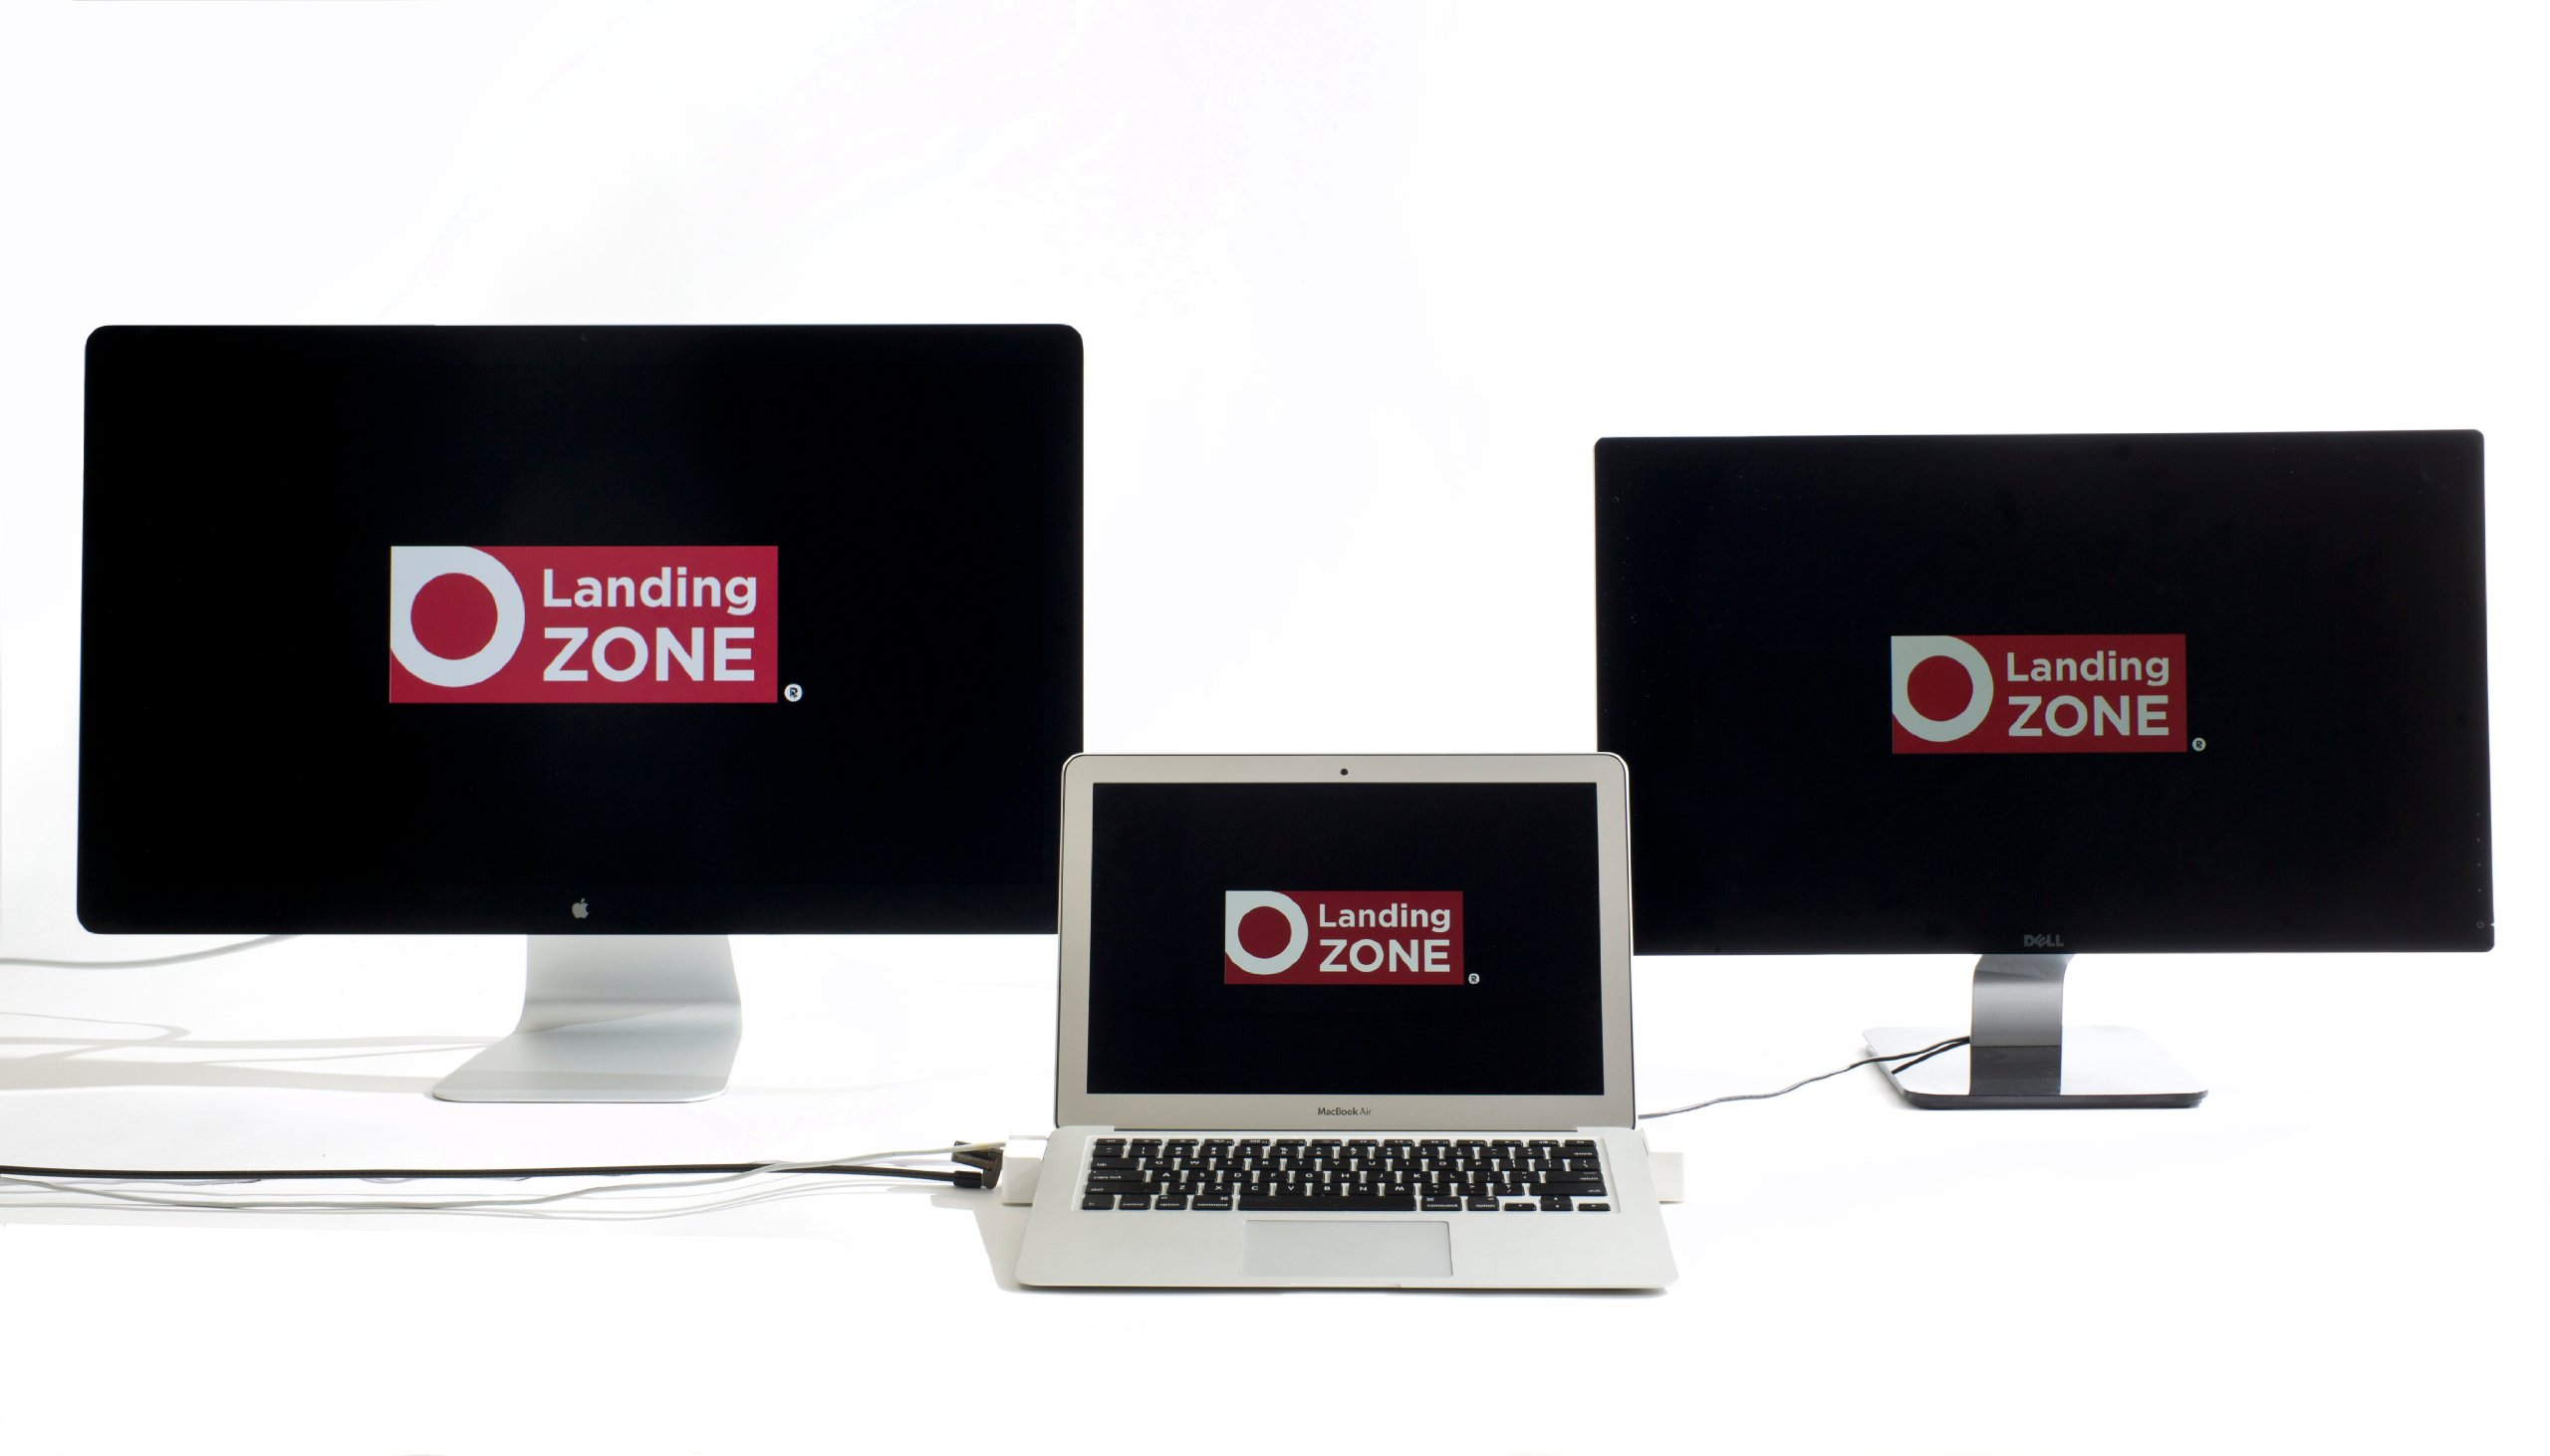 LandingZone 2.0 PRO 13'' Secure Docking Station for 13-inch MacBook Air Model A1466 Released 2012 - 2015